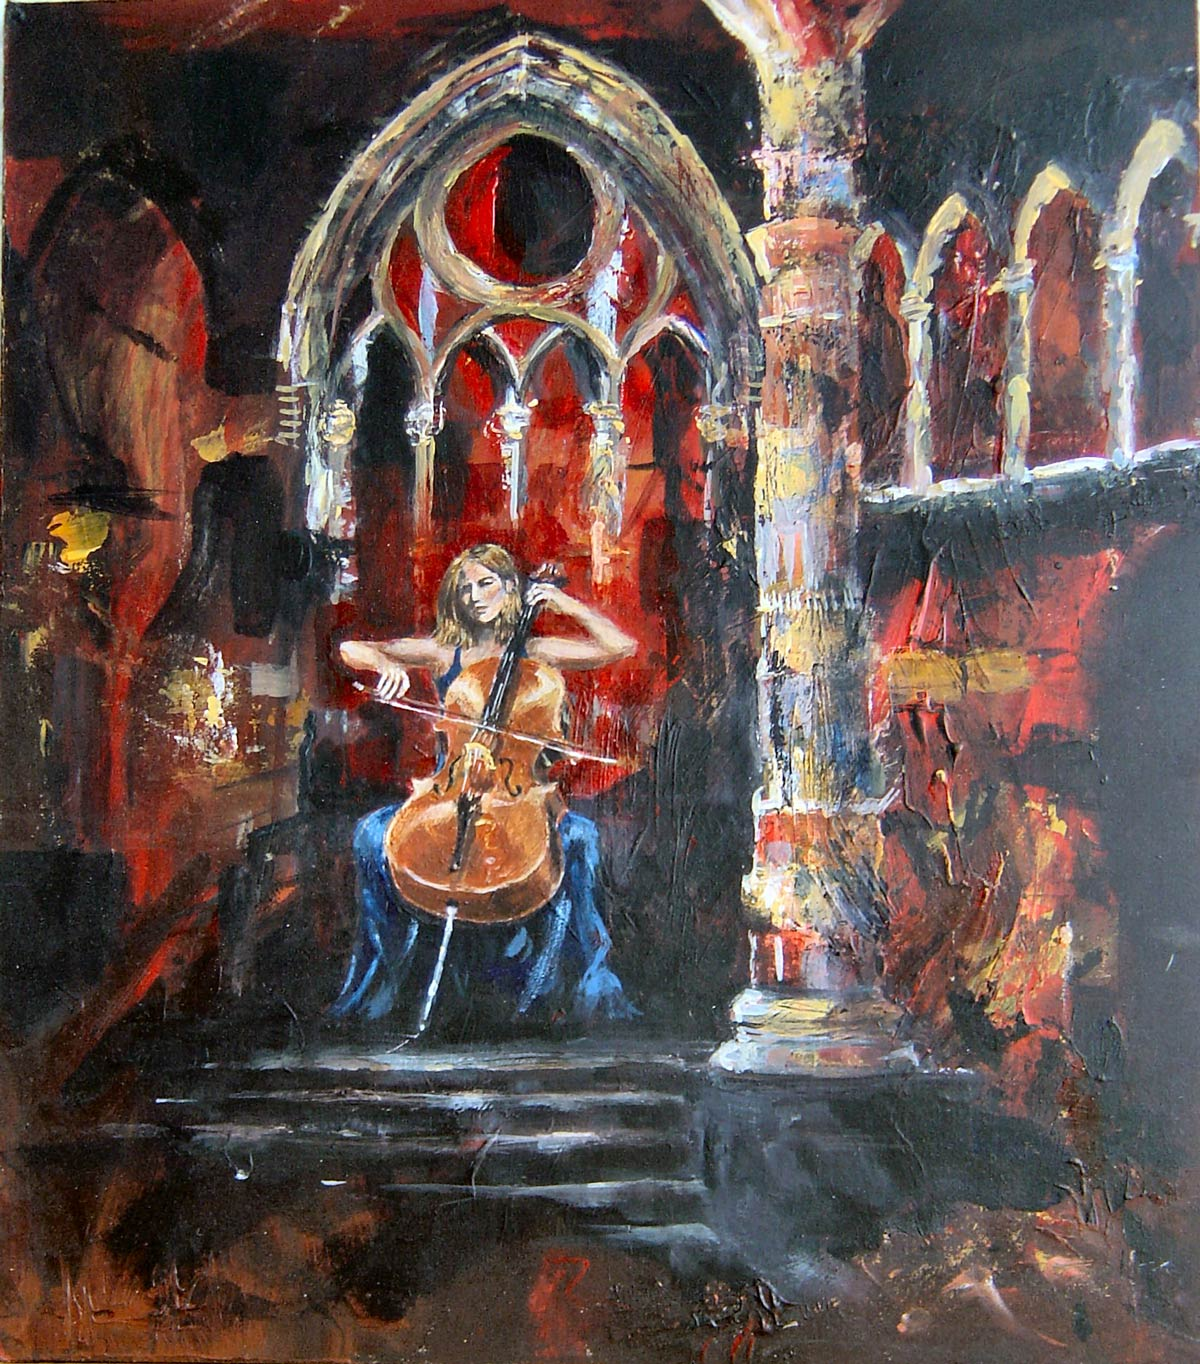 Bach in Blackfriars Chapel 40 x 36 cm